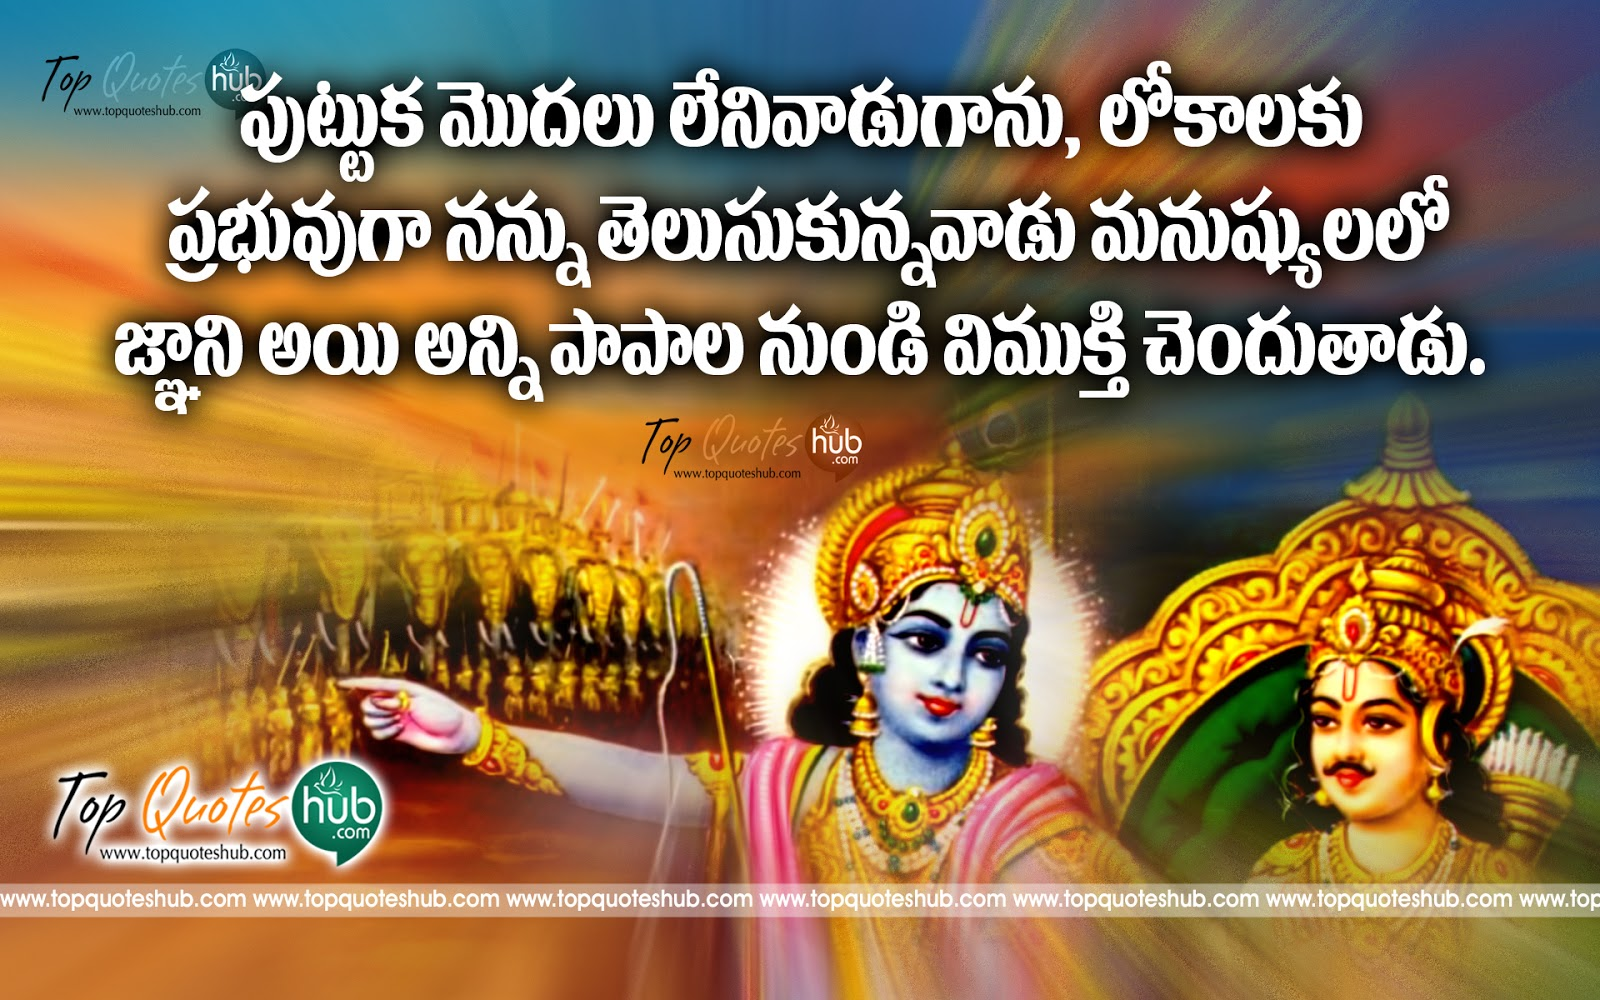 bhagavath geetha wallpapers - photo #18